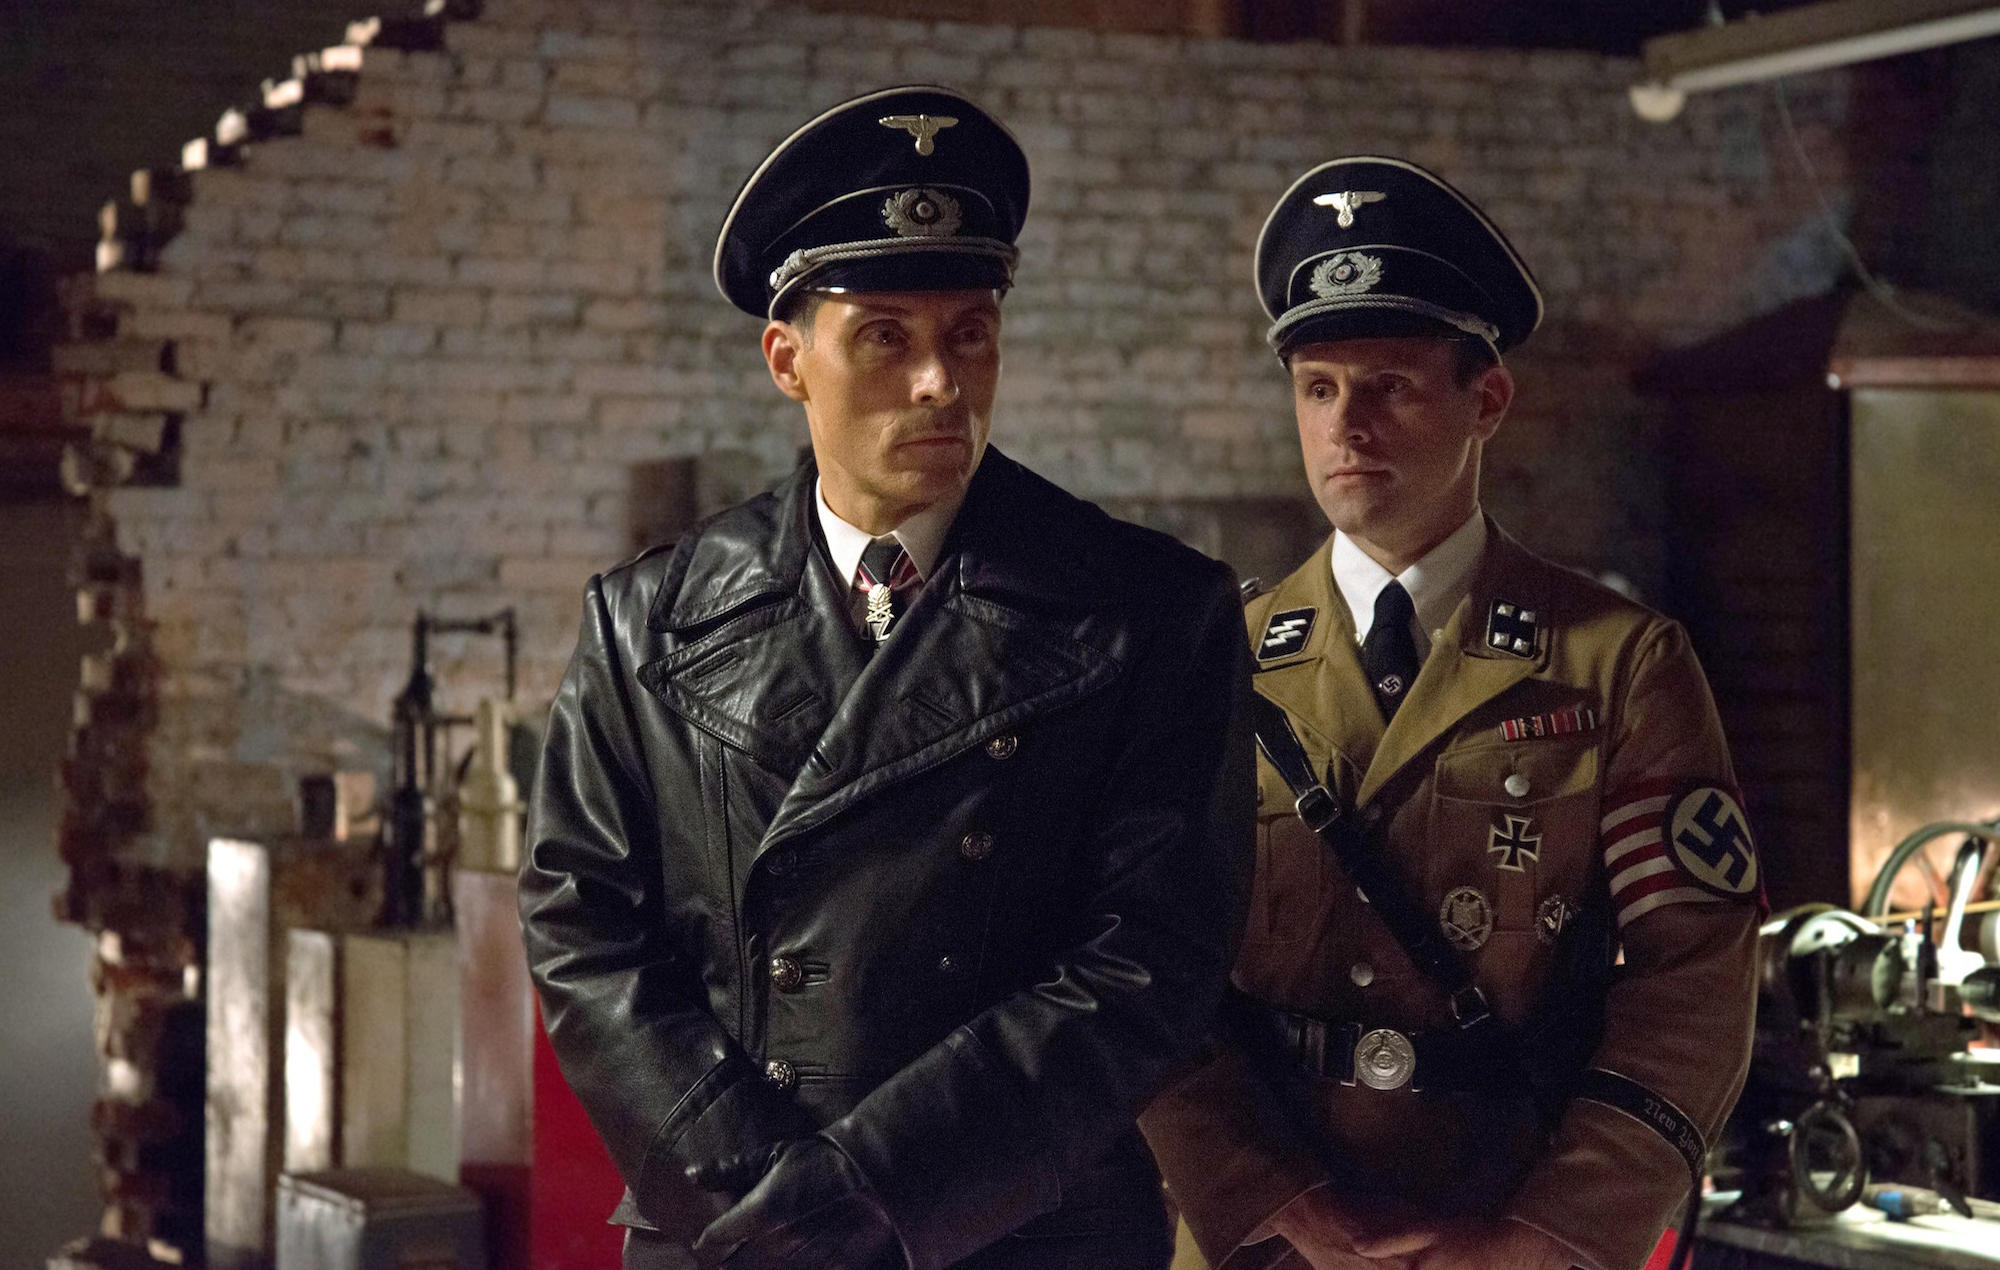 A trailer for season 4 of 'The Man In The High Castle' signals the beginning of the end – watch